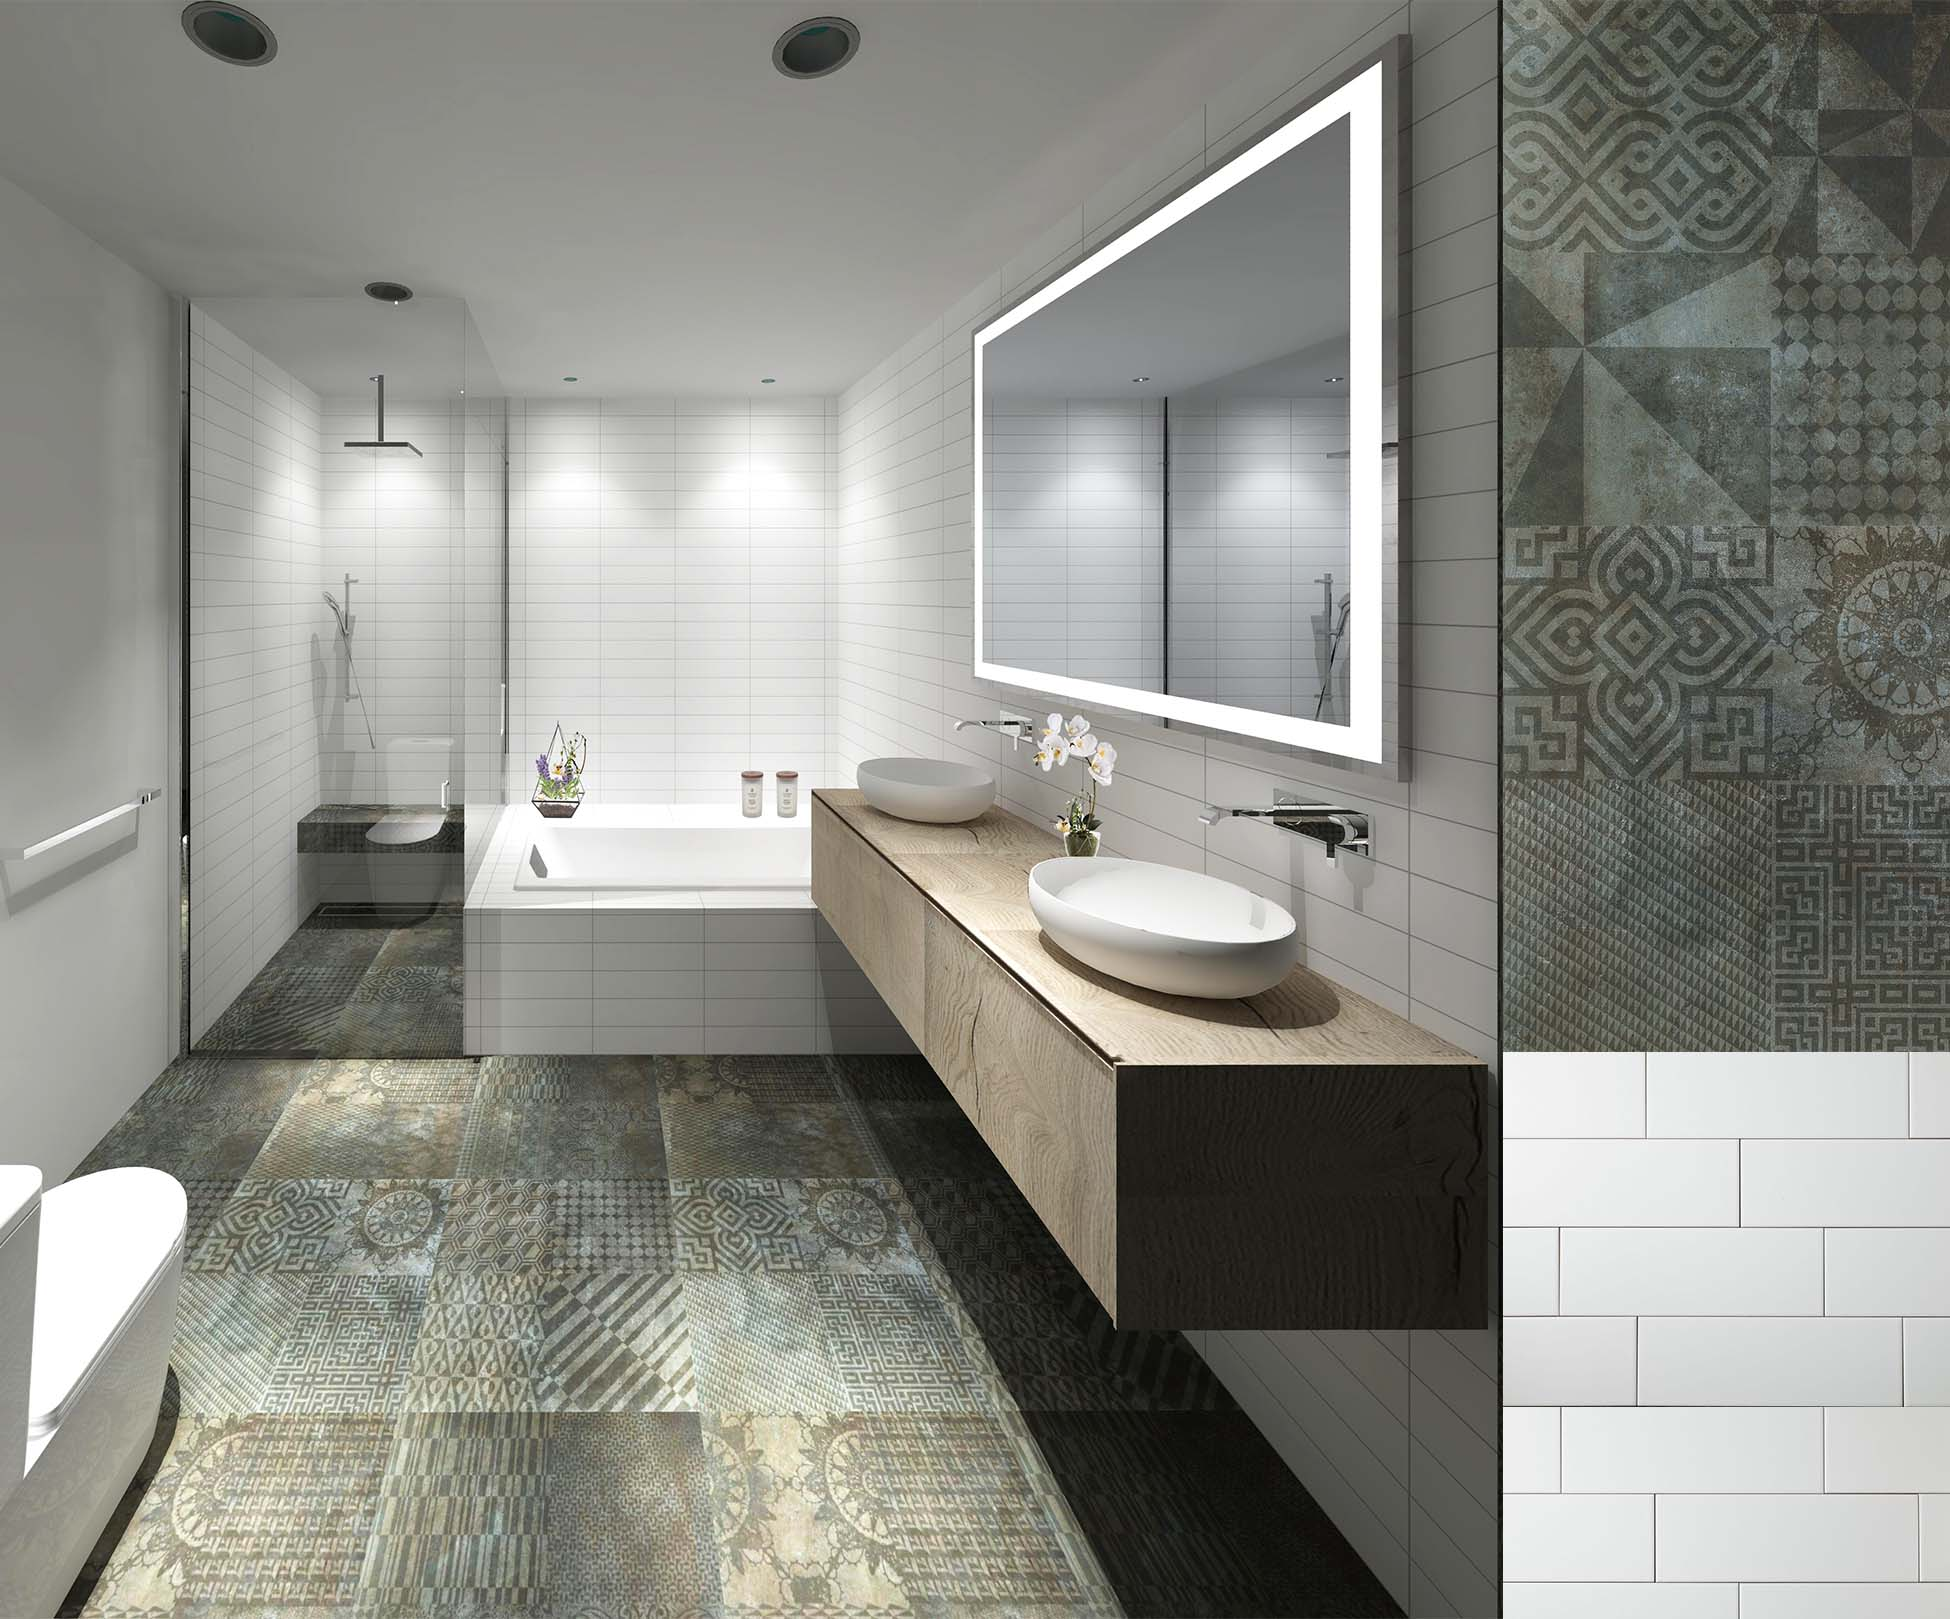 spazio la tile gallery 3d rendering visualization 6.jpg